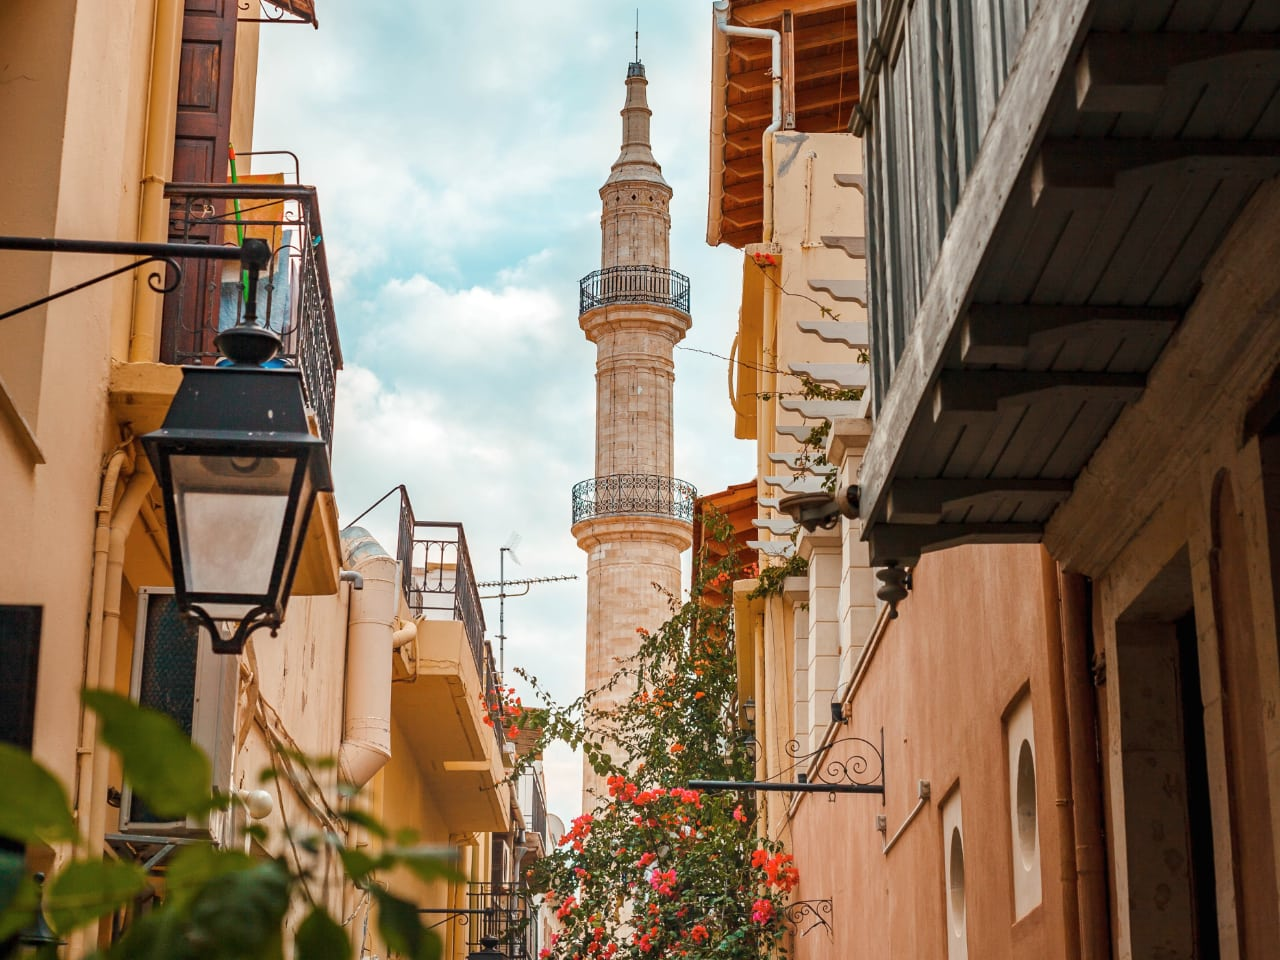 Photo_of_Day_:_The_Picturesque_Town_of_Rethymno_or_Rethimno